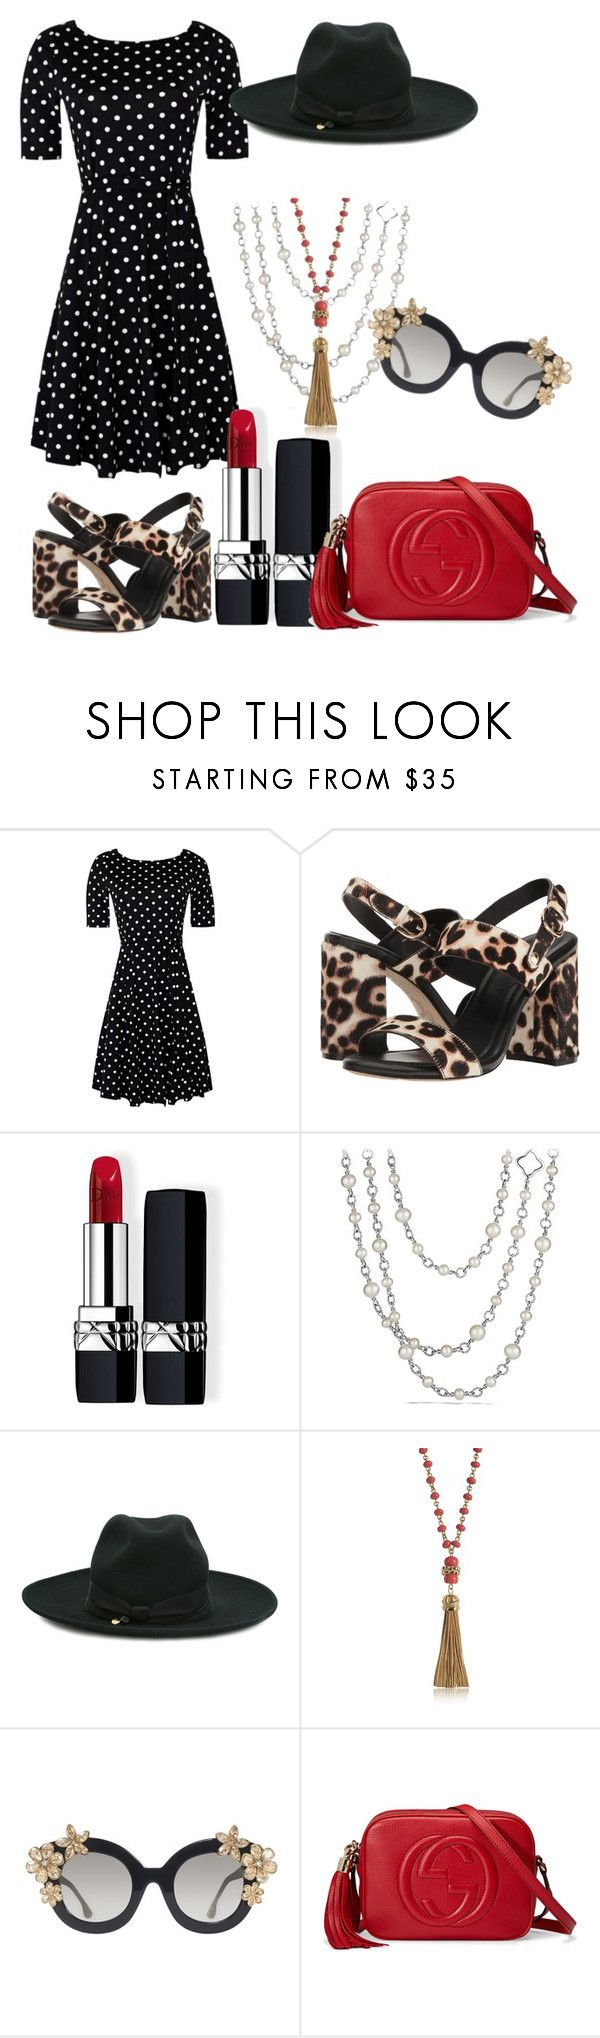 """""""black red summer"""" by ariannadi on Polyvore featuring Joie, Christian Dior, David Yurman, Federica Moretti, Tory Burch, Alice + Olivia and Gucci"""